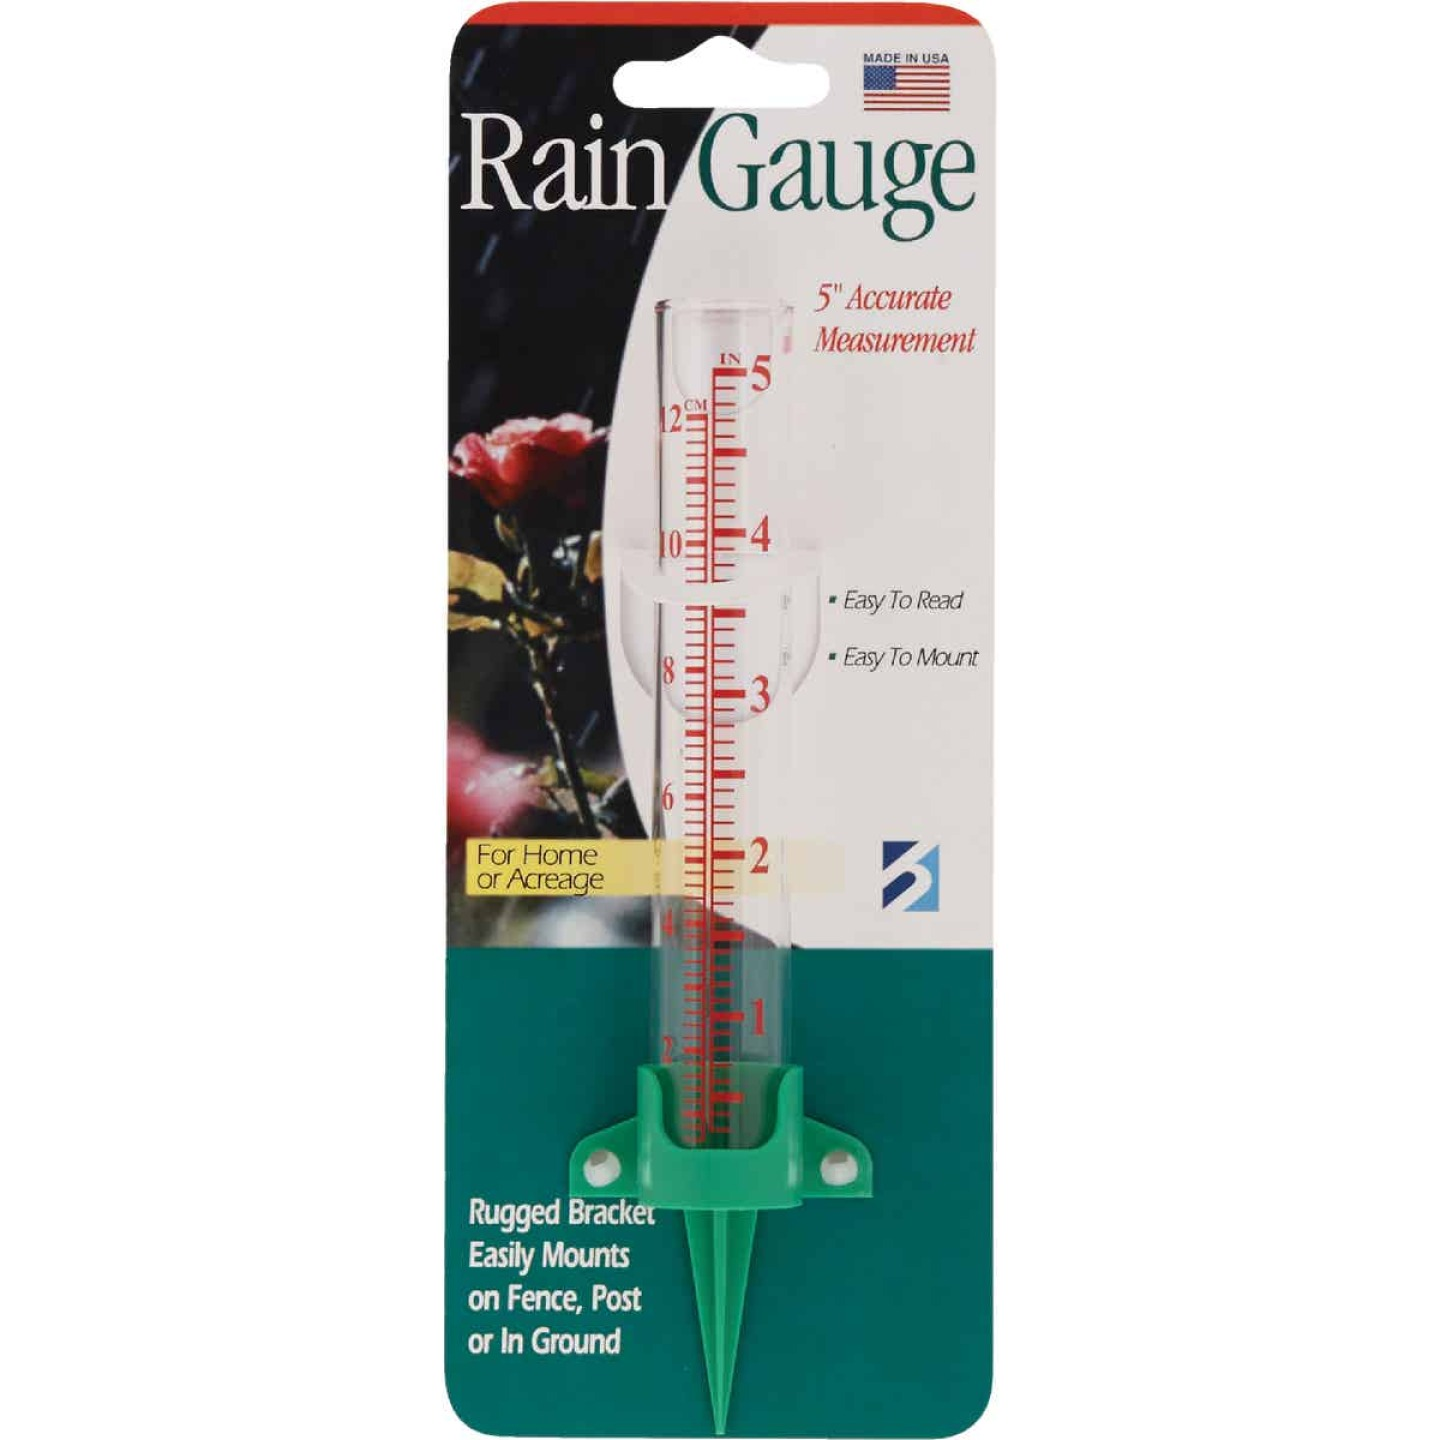 Taylor 5 In. Glass Rain Gauge Image 2